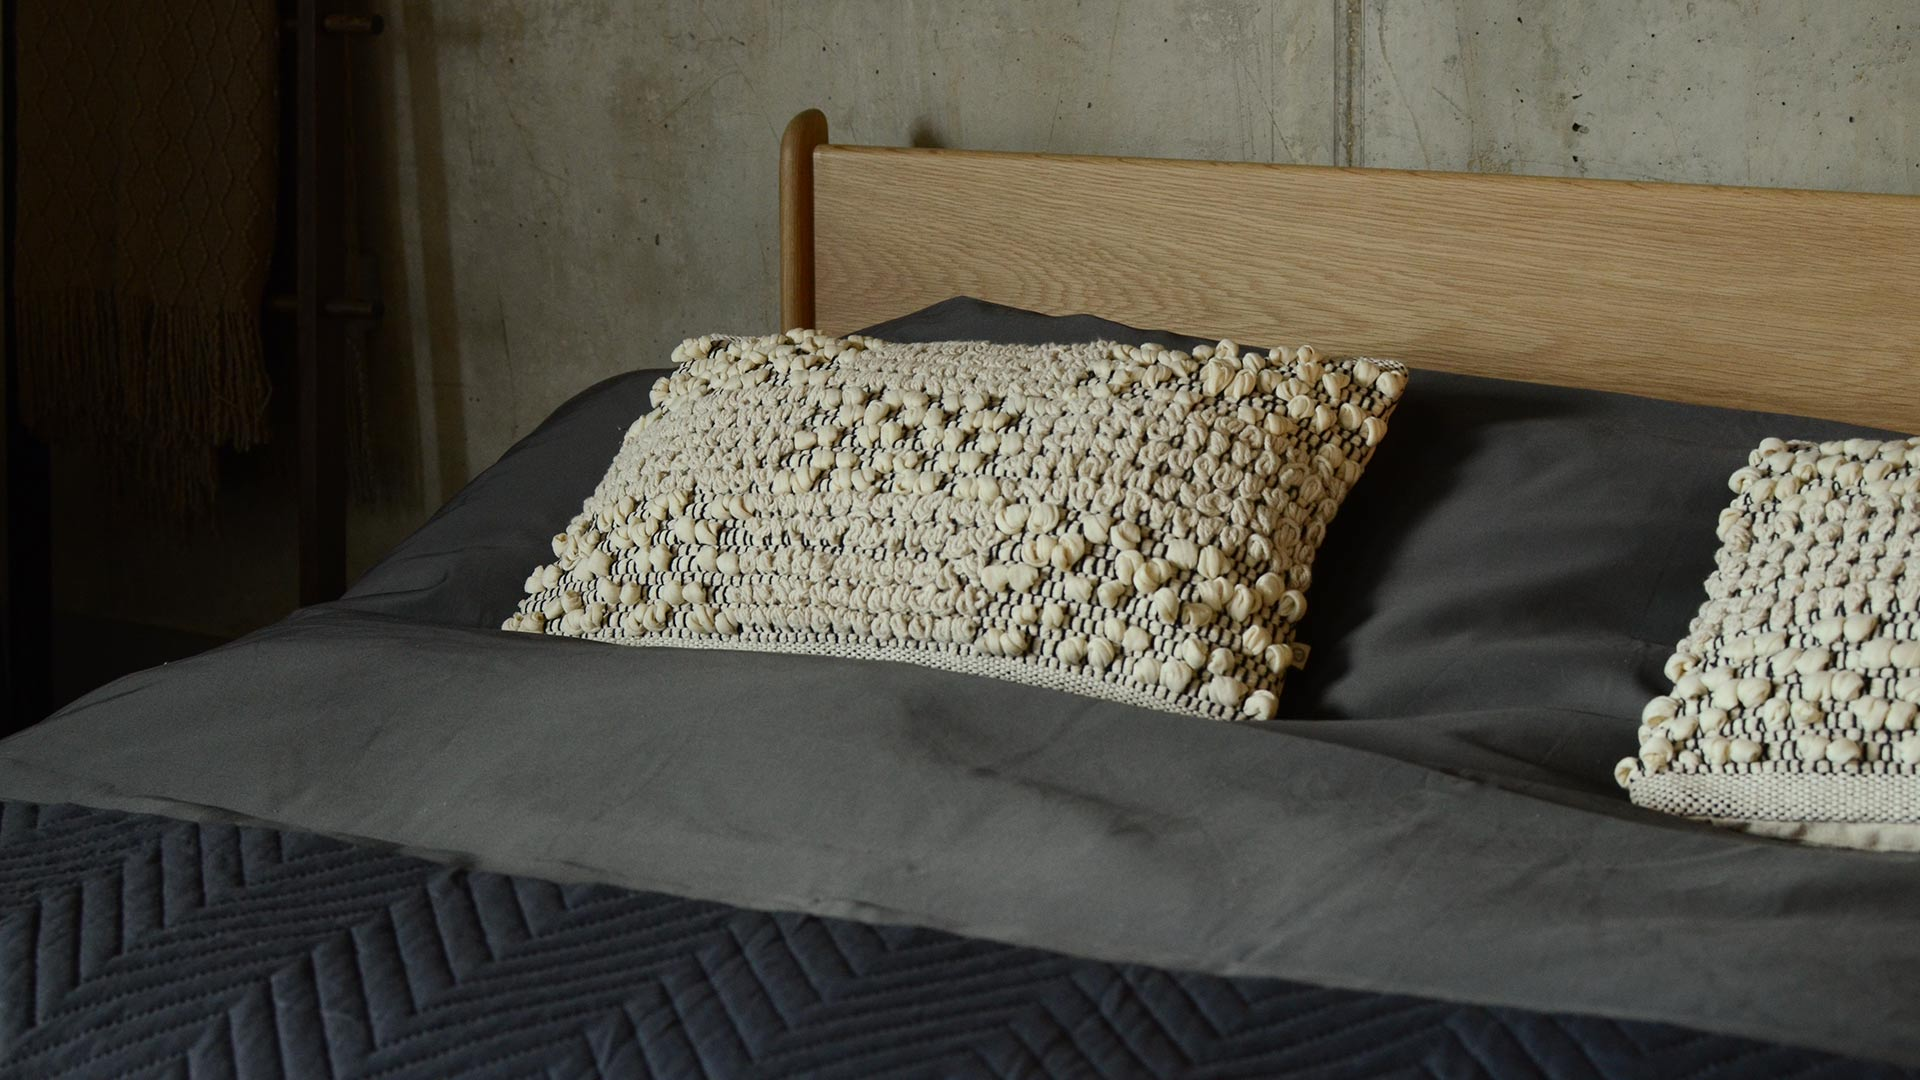 bobble-cushions-on-Pimlico-bed